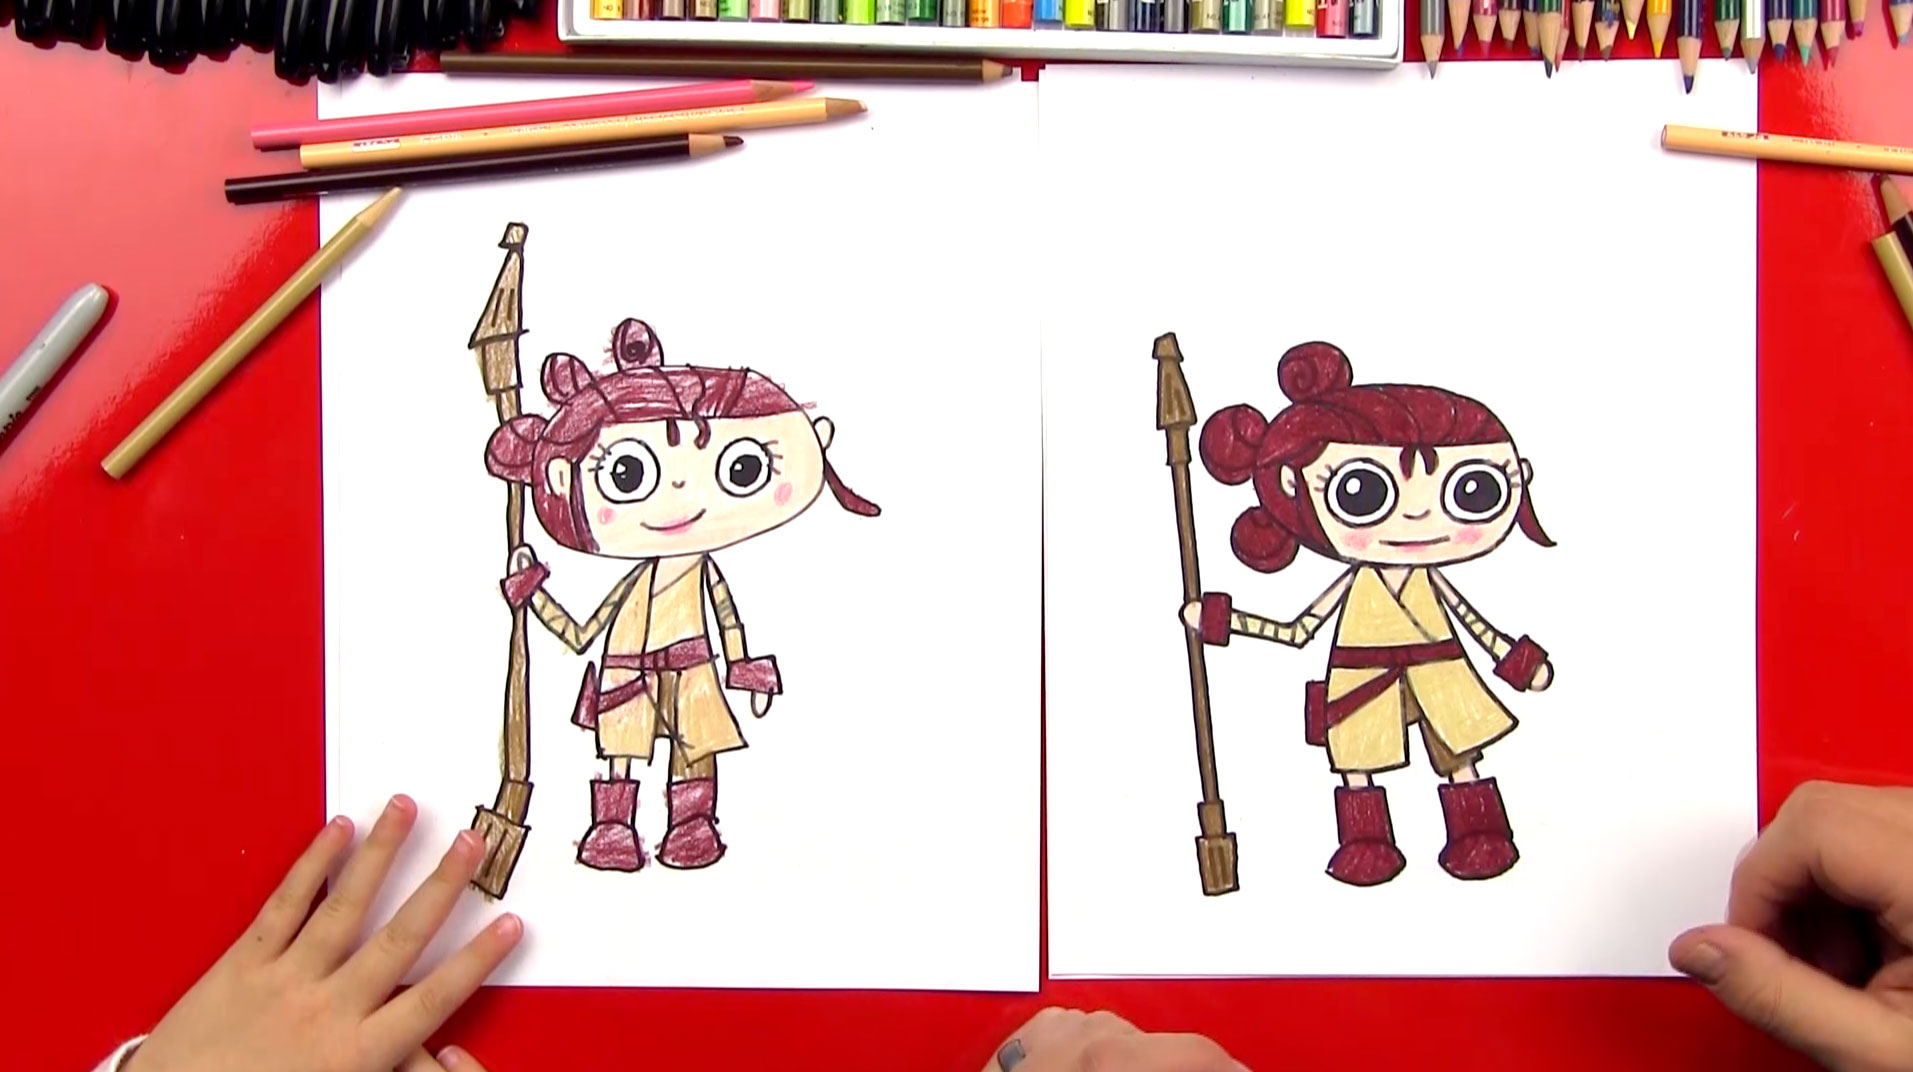 Powerpuff Girls Toys : How to draw a cartoon rey from star wars art for kids hub